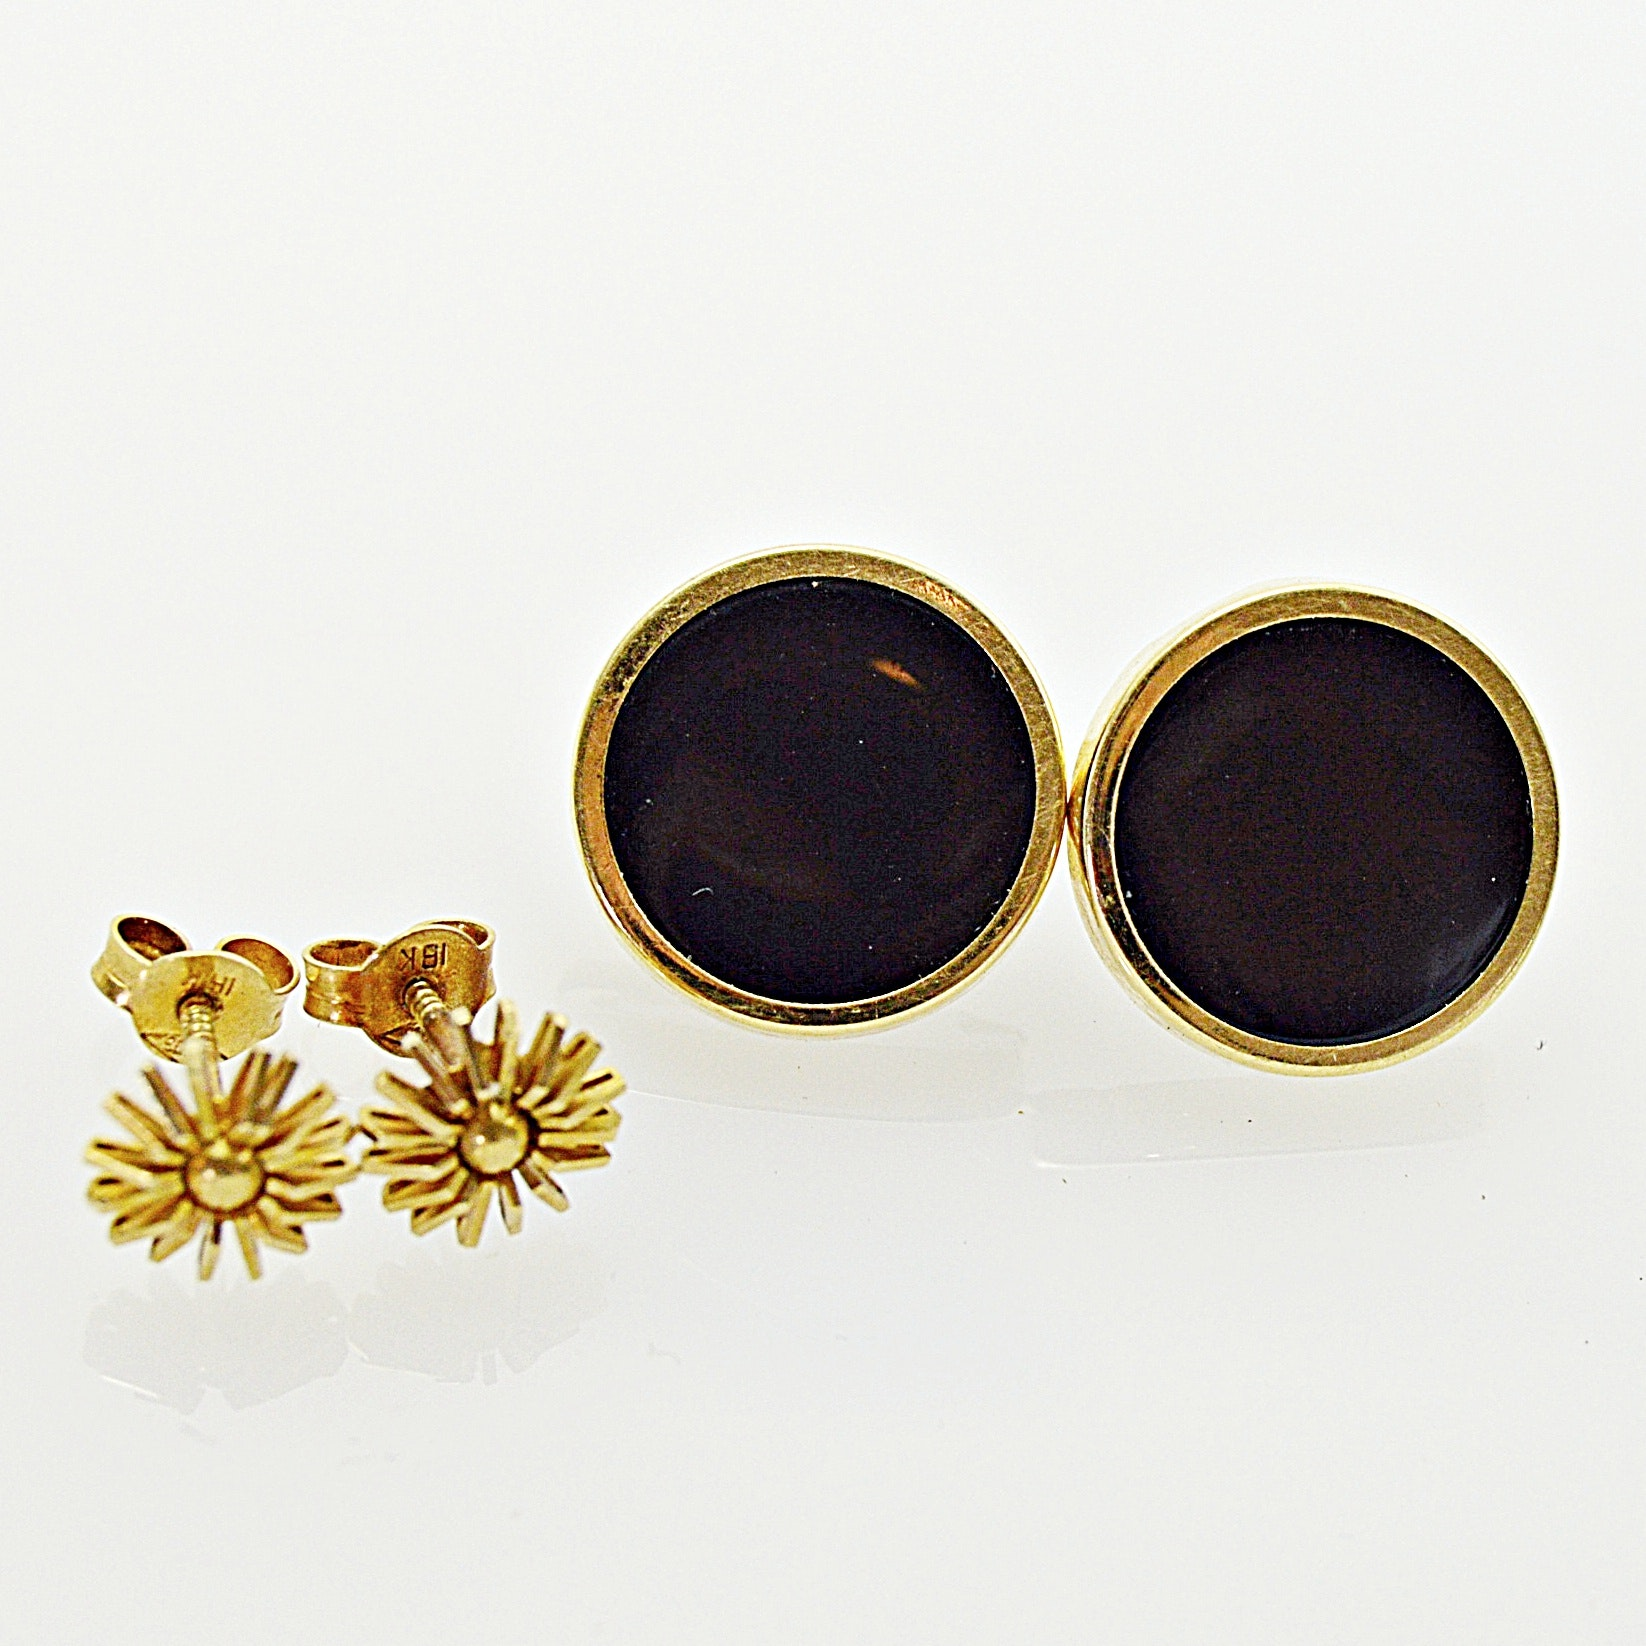 14K Yellow Gold and Black Onyx Pierced Earrings, 18K Yellow Gold Flower Earrings